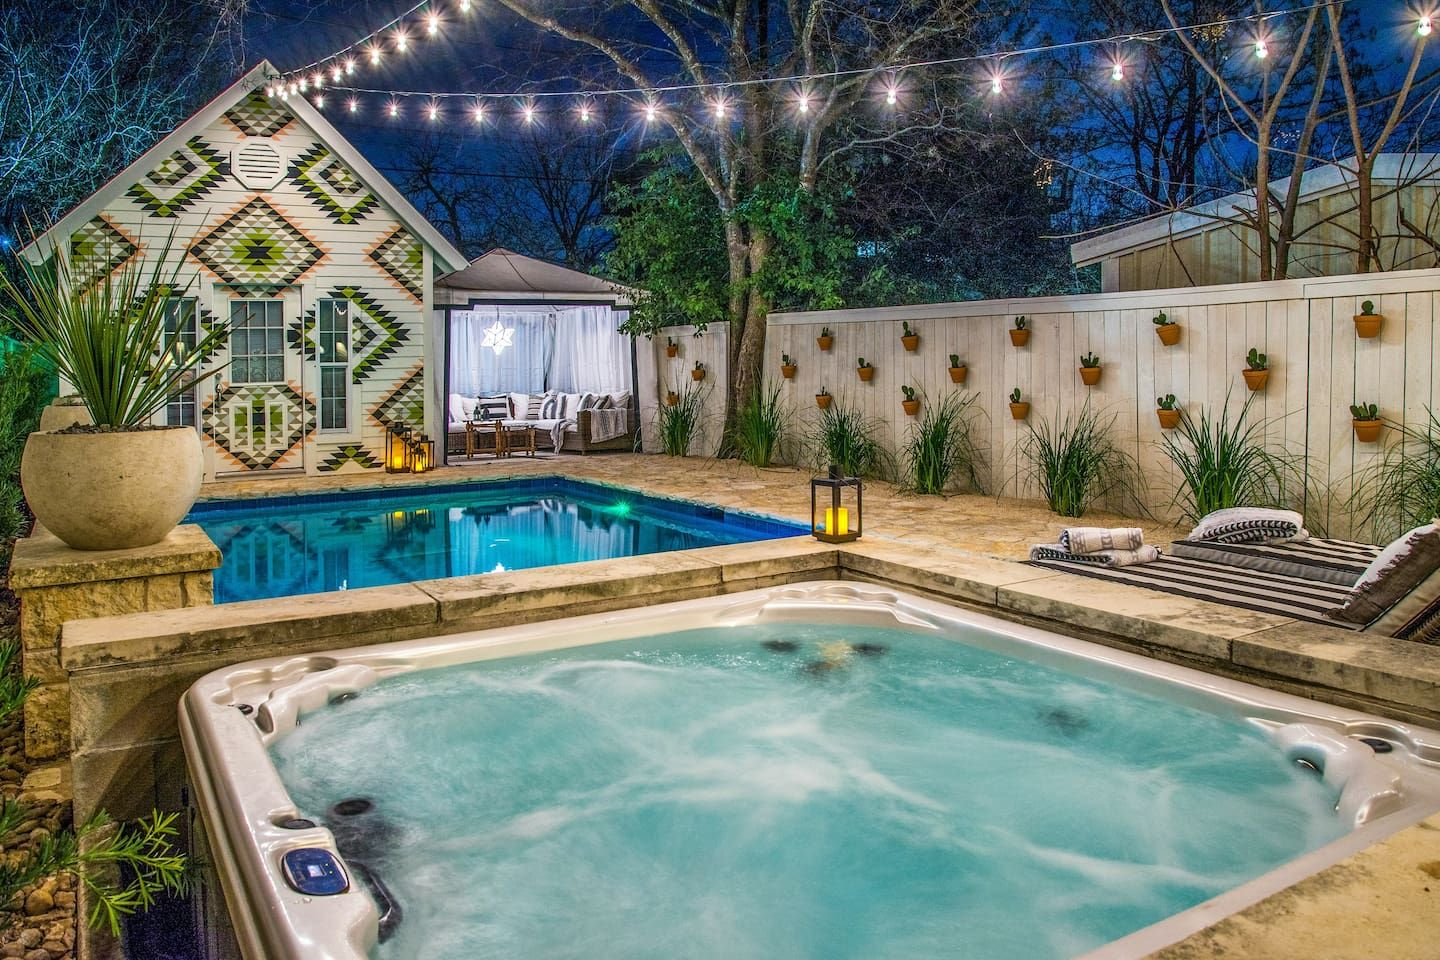 3br Soco Pool Oasis Houses For Rent In Austin Texas United